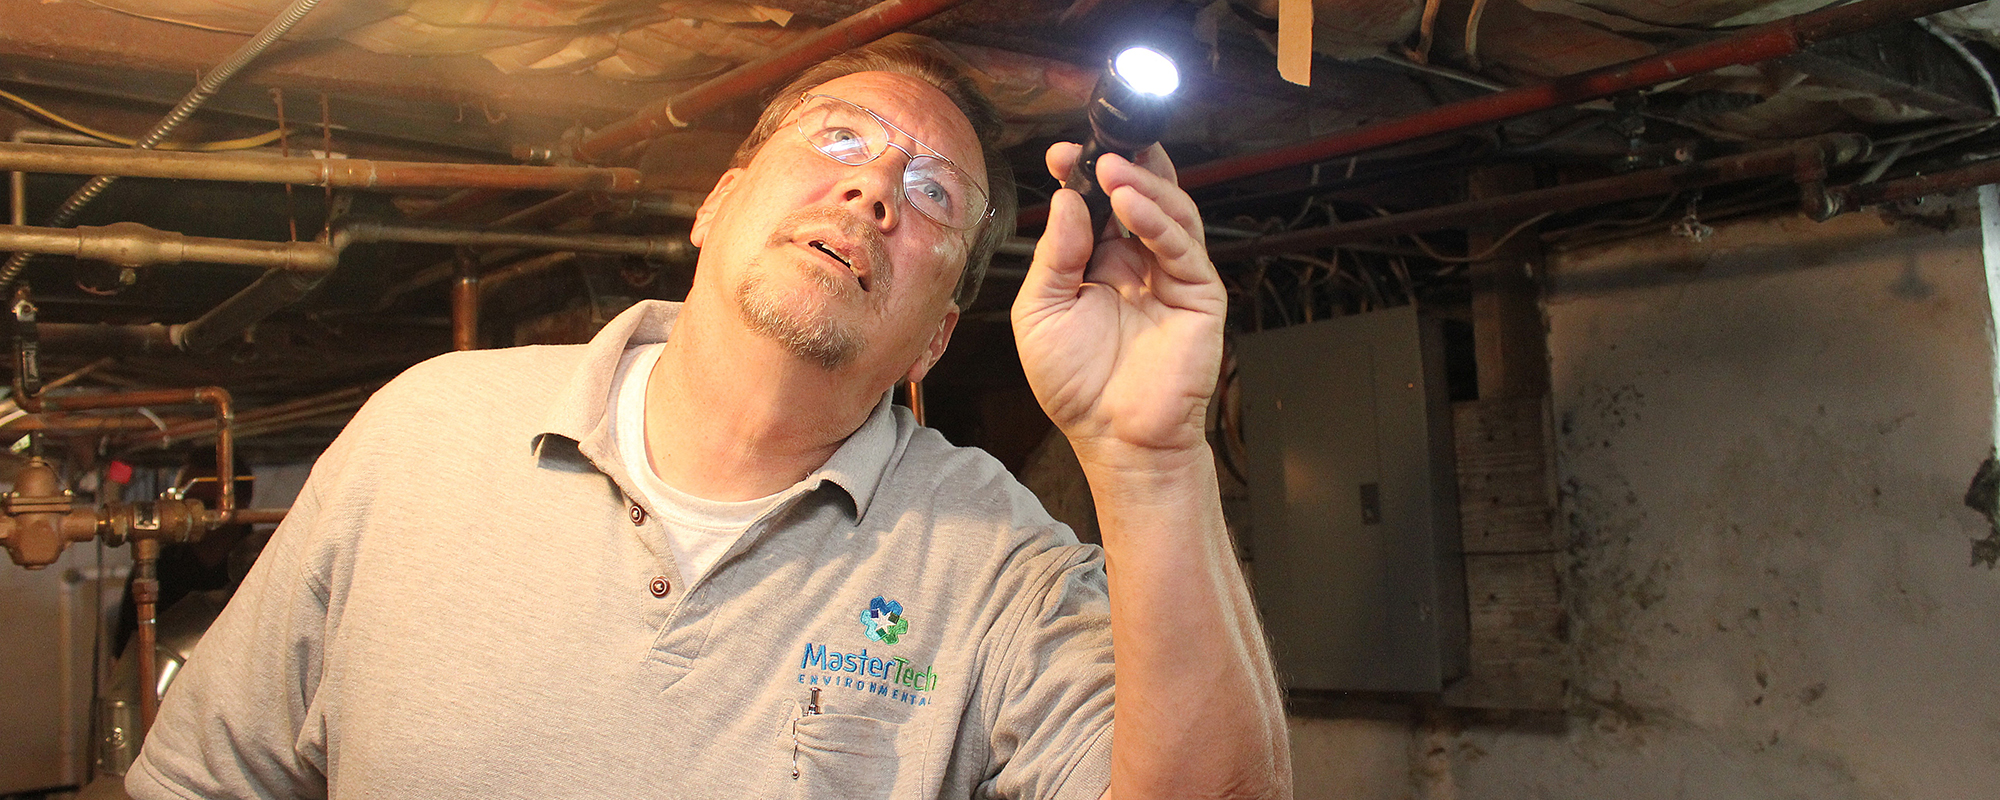 improper condensation control can lead to mold development in south jersey homes